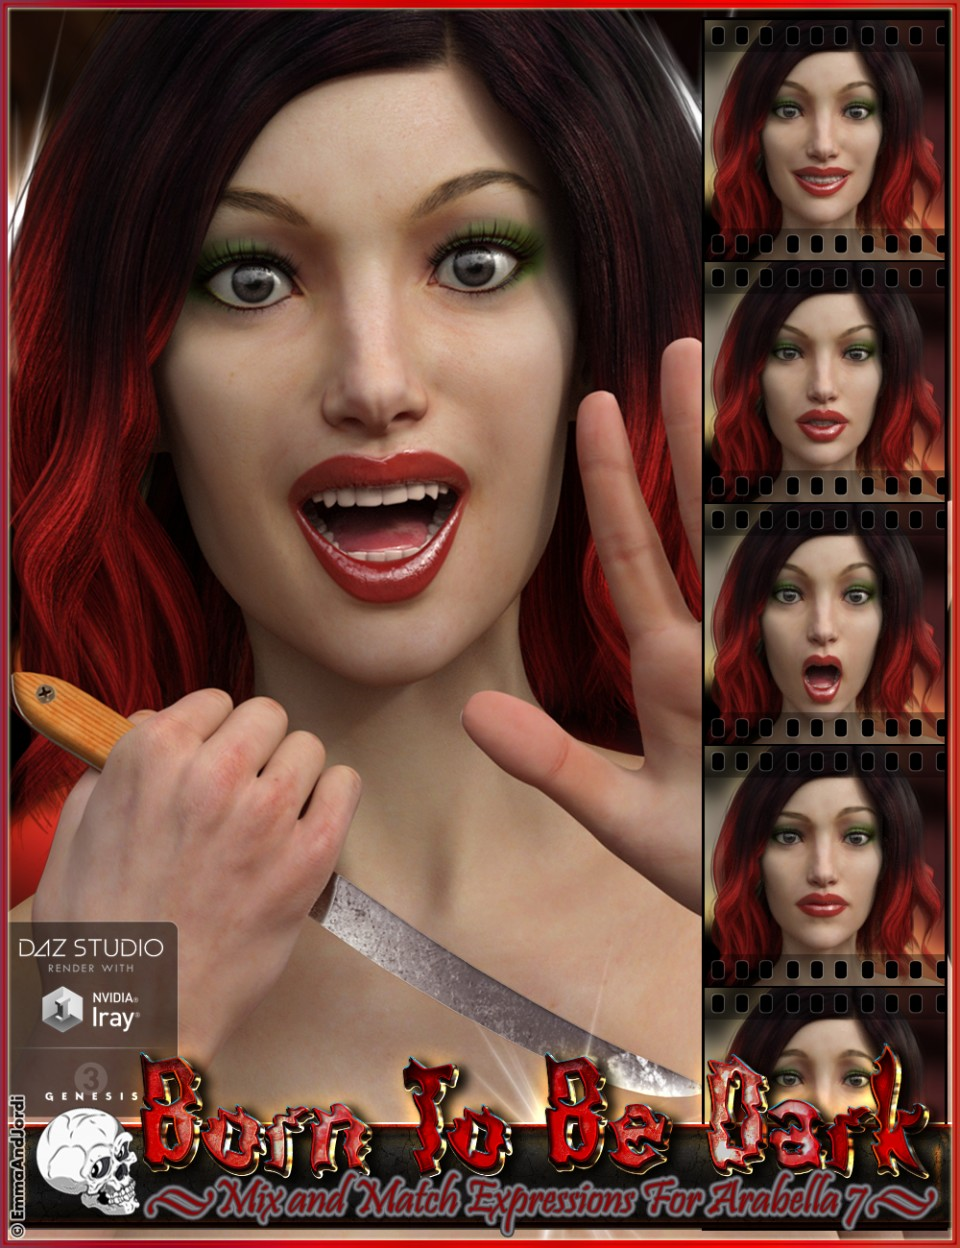 Born To Be Dark Mix and Match Expressions for Arabella 7_DAZ3D下载站